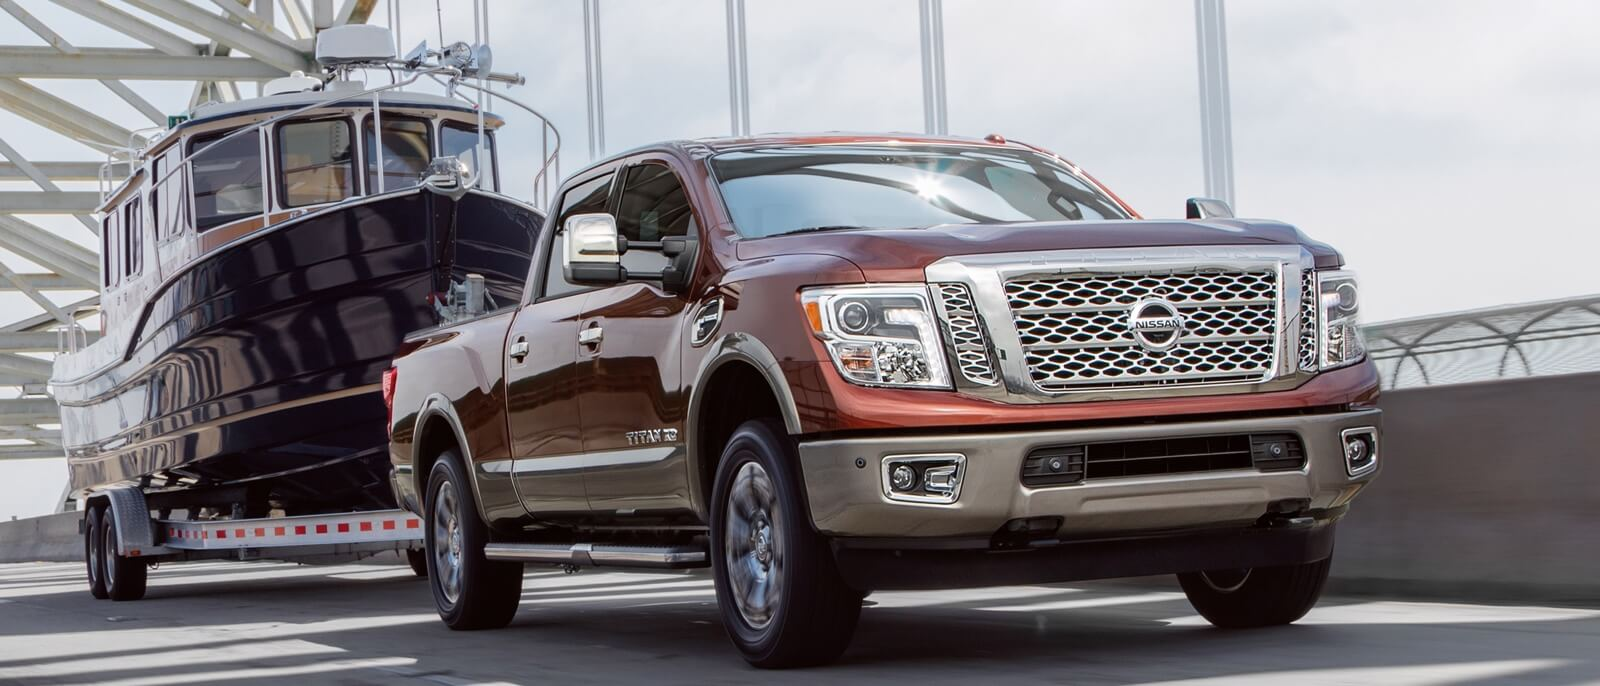 2016 Nissan Titan XD in action